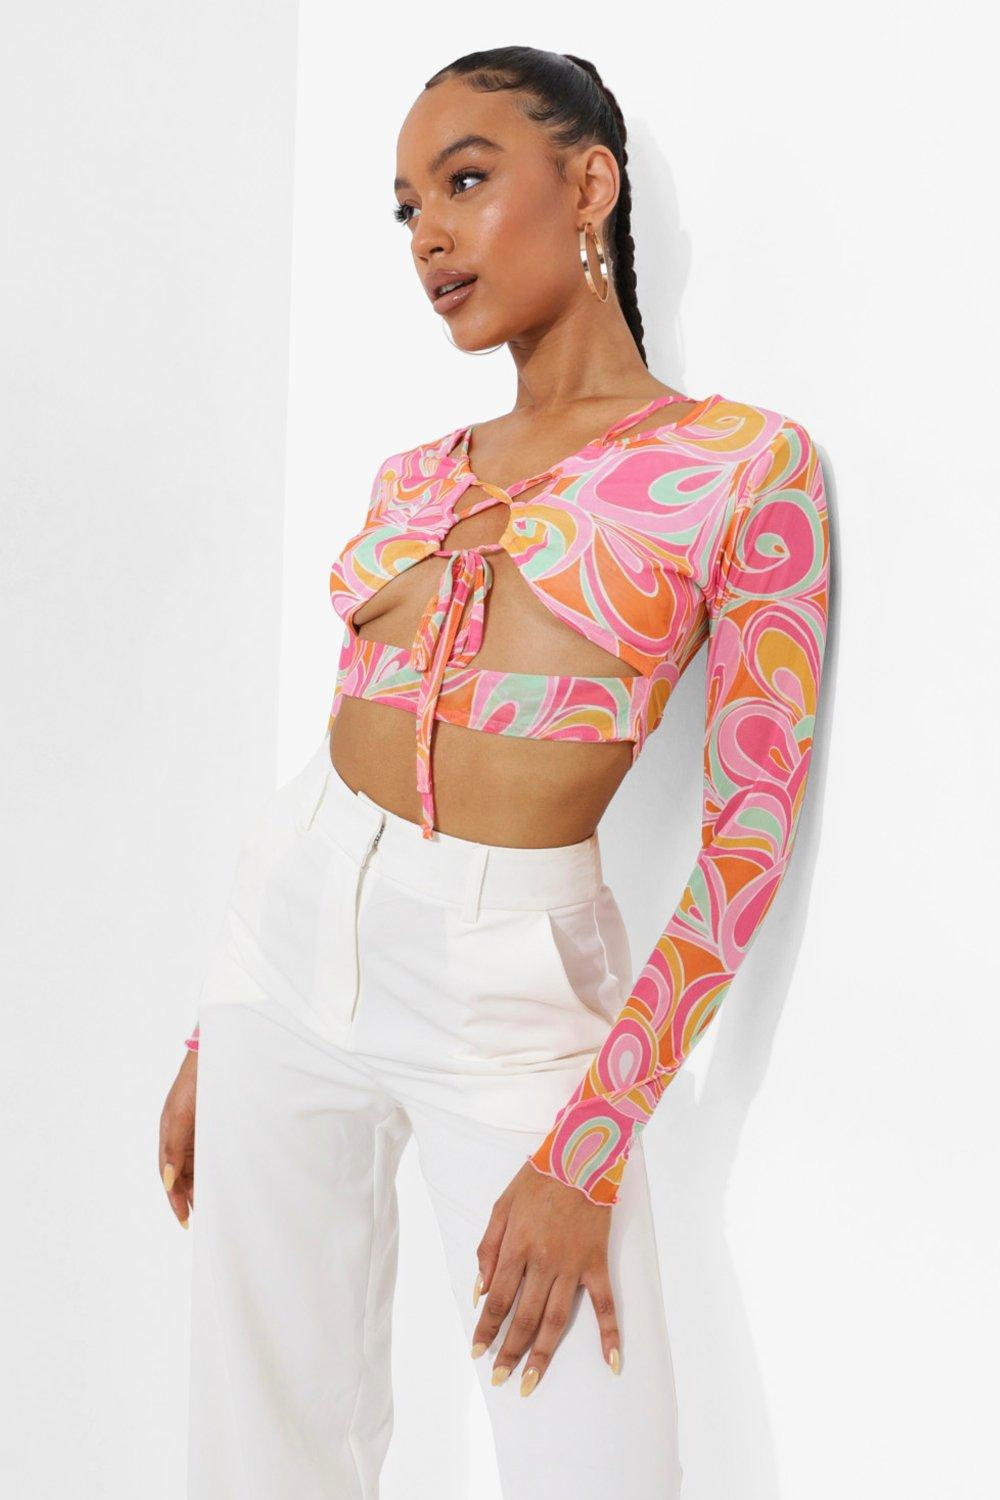 60s Shirts, T-shirts, Blouses, Hippie Shirts Womens Abstract Printed Lace Up Mesh Top - Pink - 12 $16.20 AT vintagedancer.com